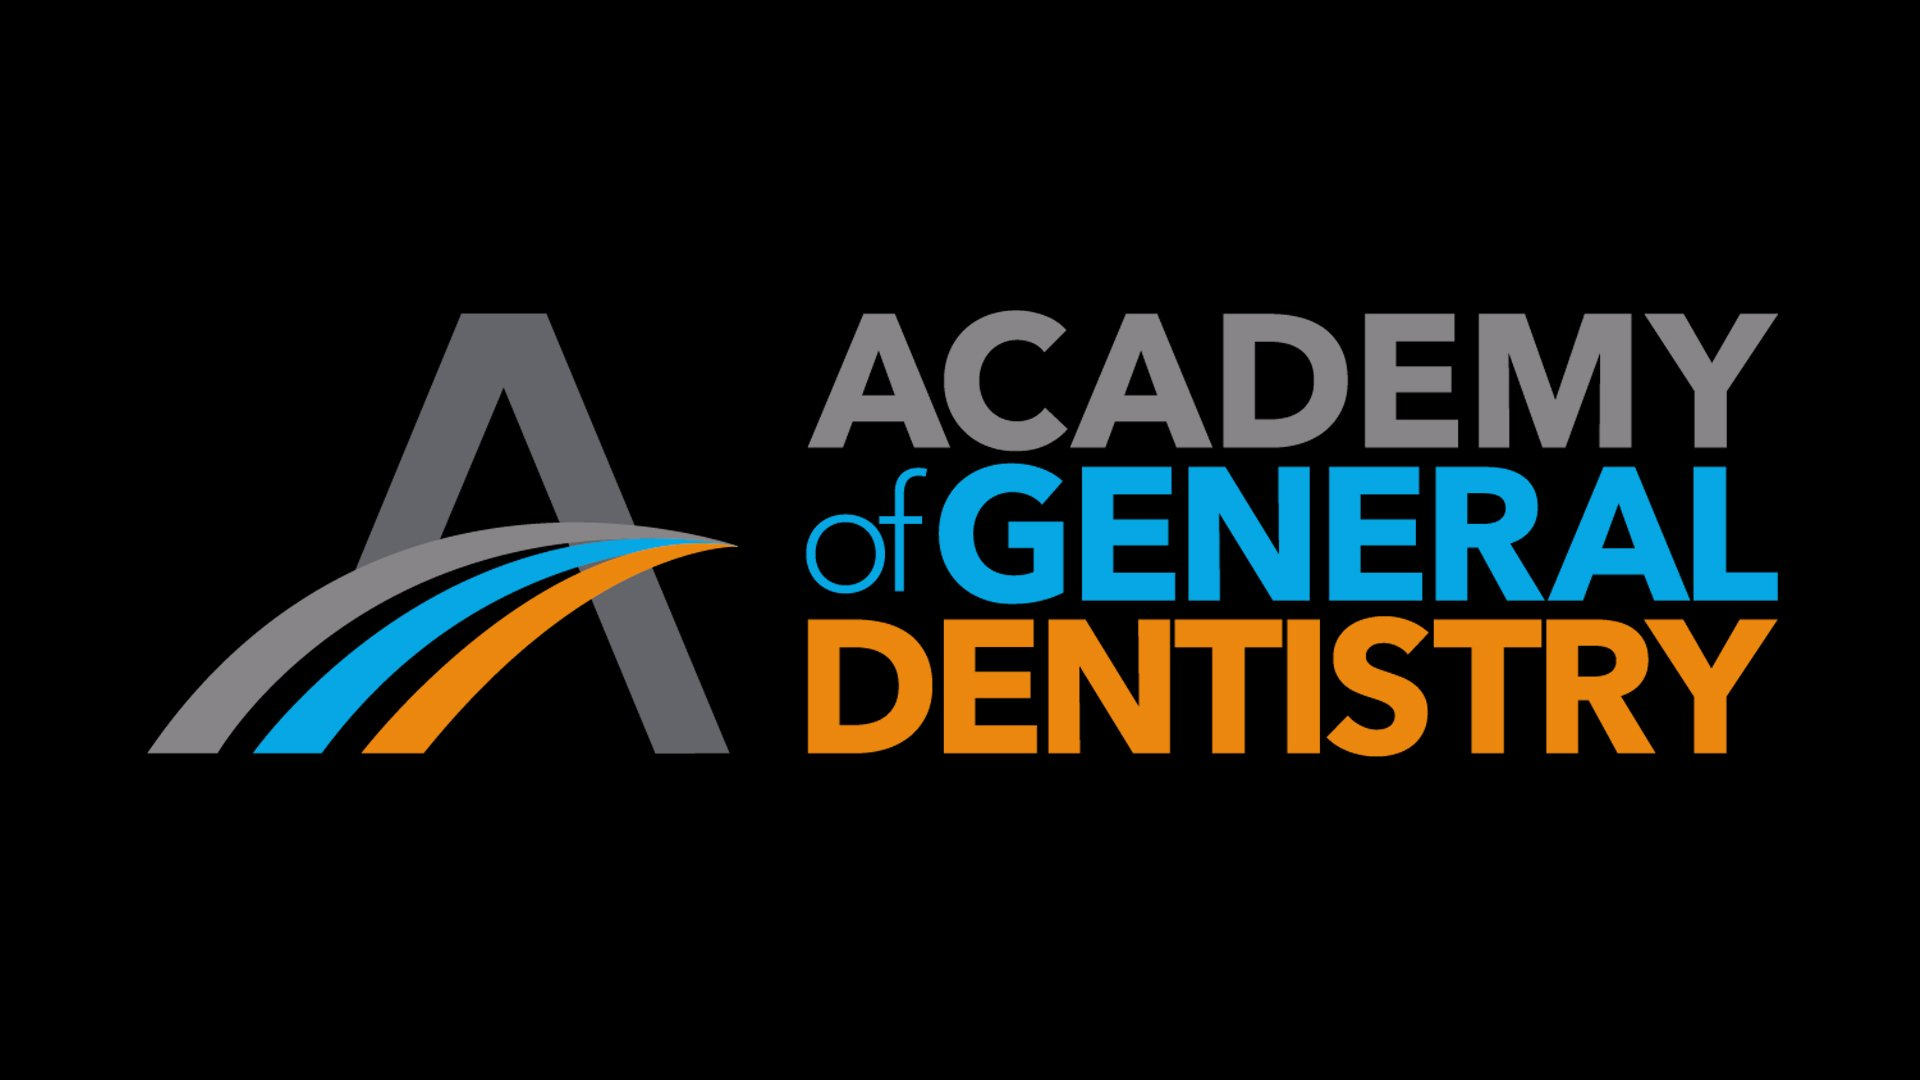 meaning academy of general dentistry logo and symbol